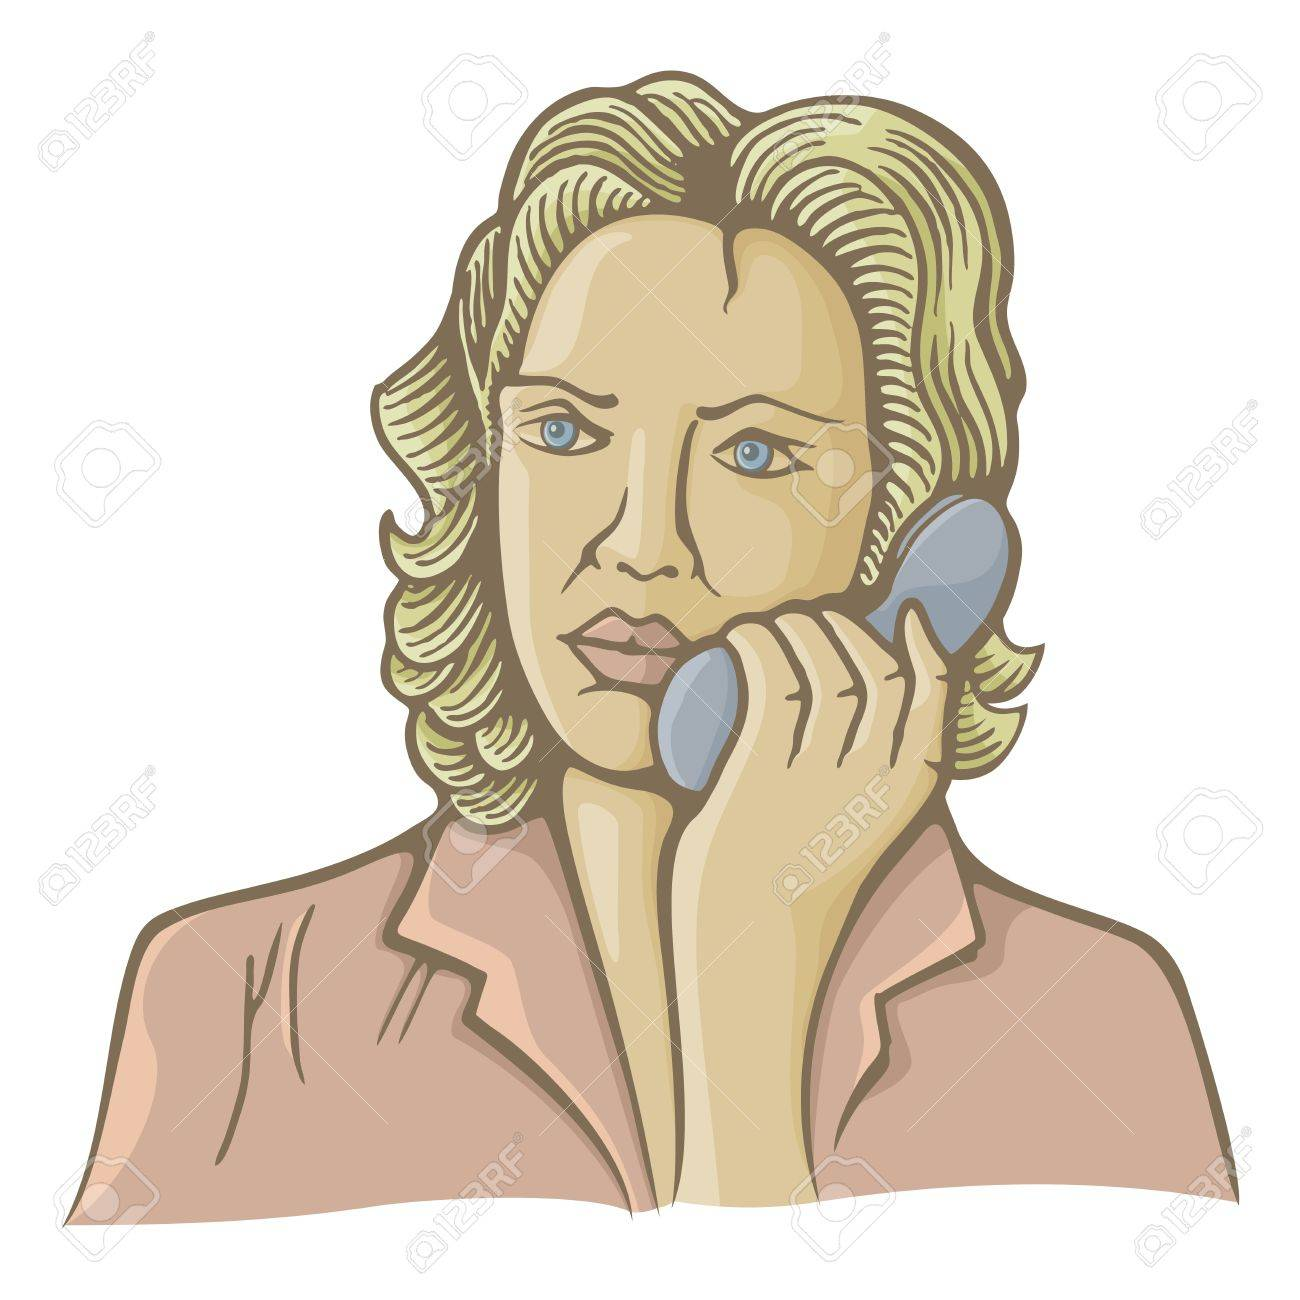 Old fashion illustration of woman speaking on phone. - 16814200